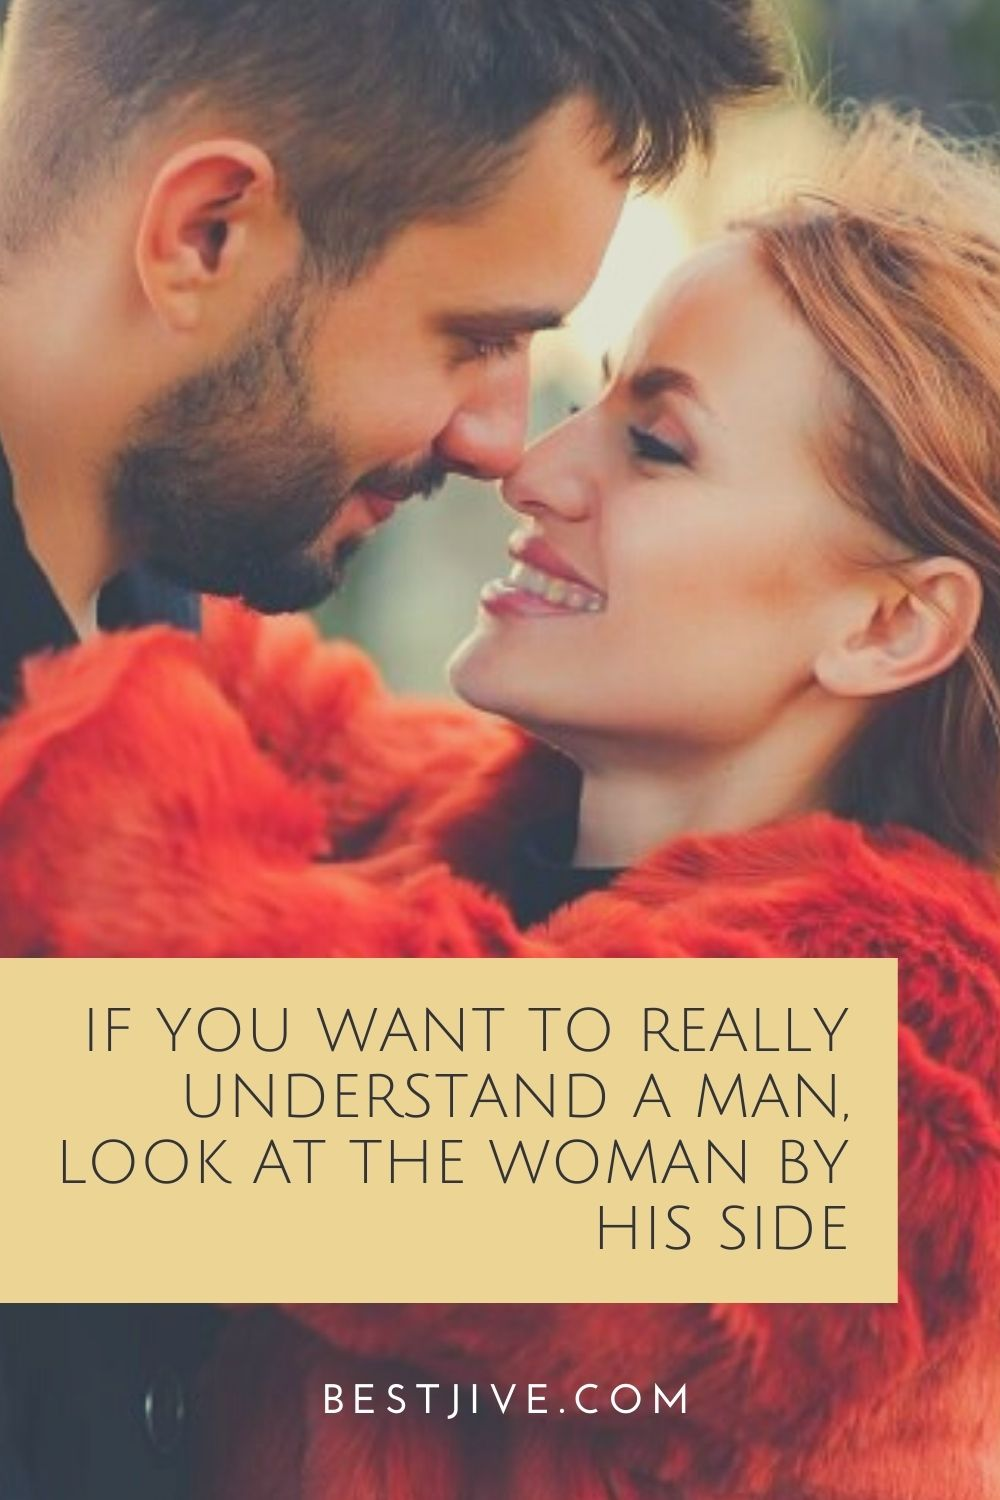 If you want to really understand a man, look at the woman by his side